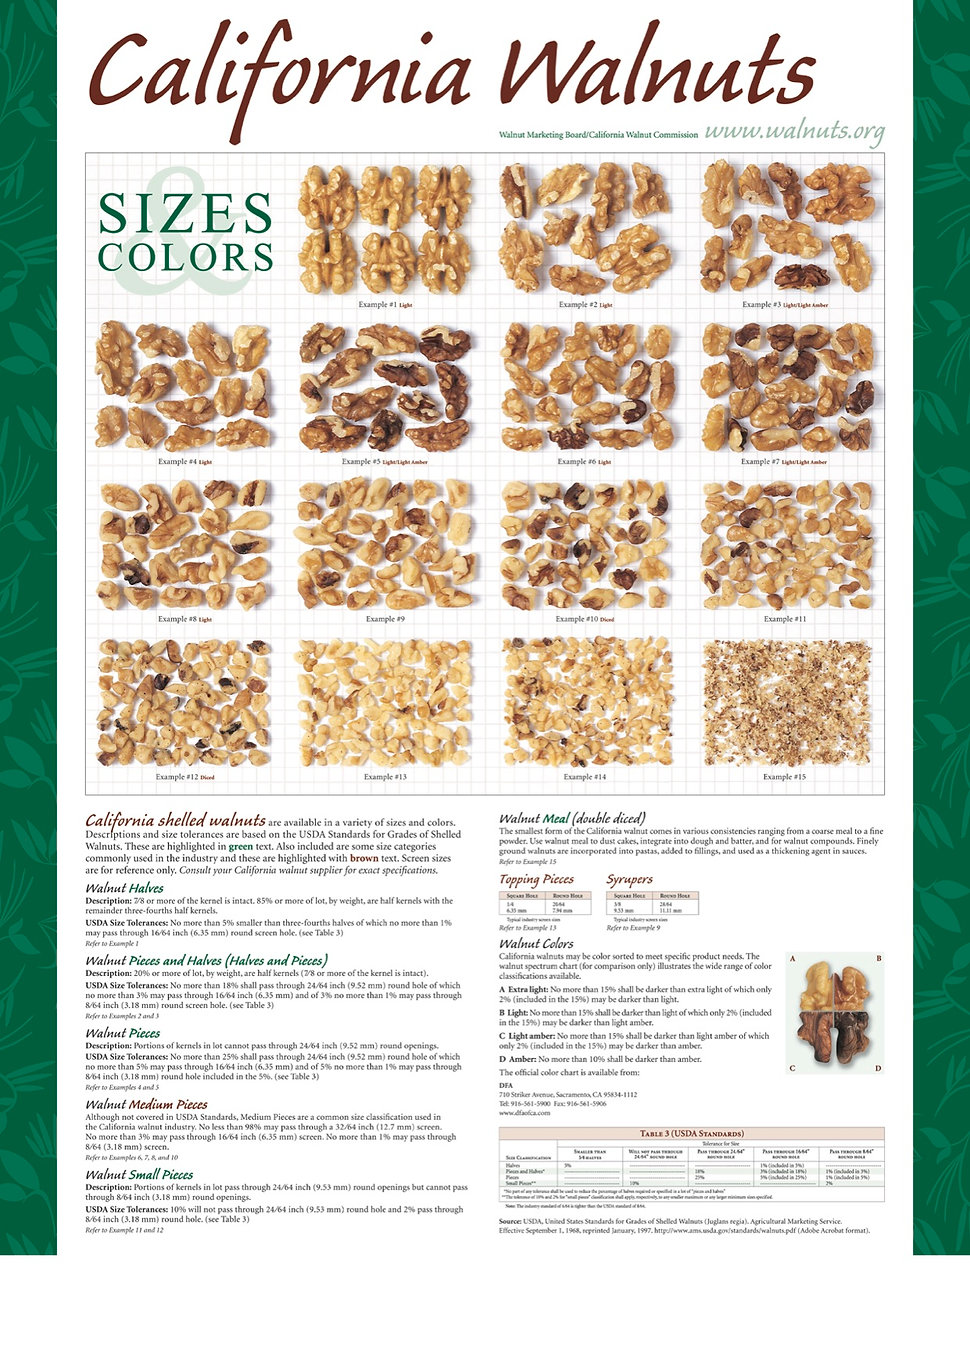 walnut_color_and_sizes.jpg